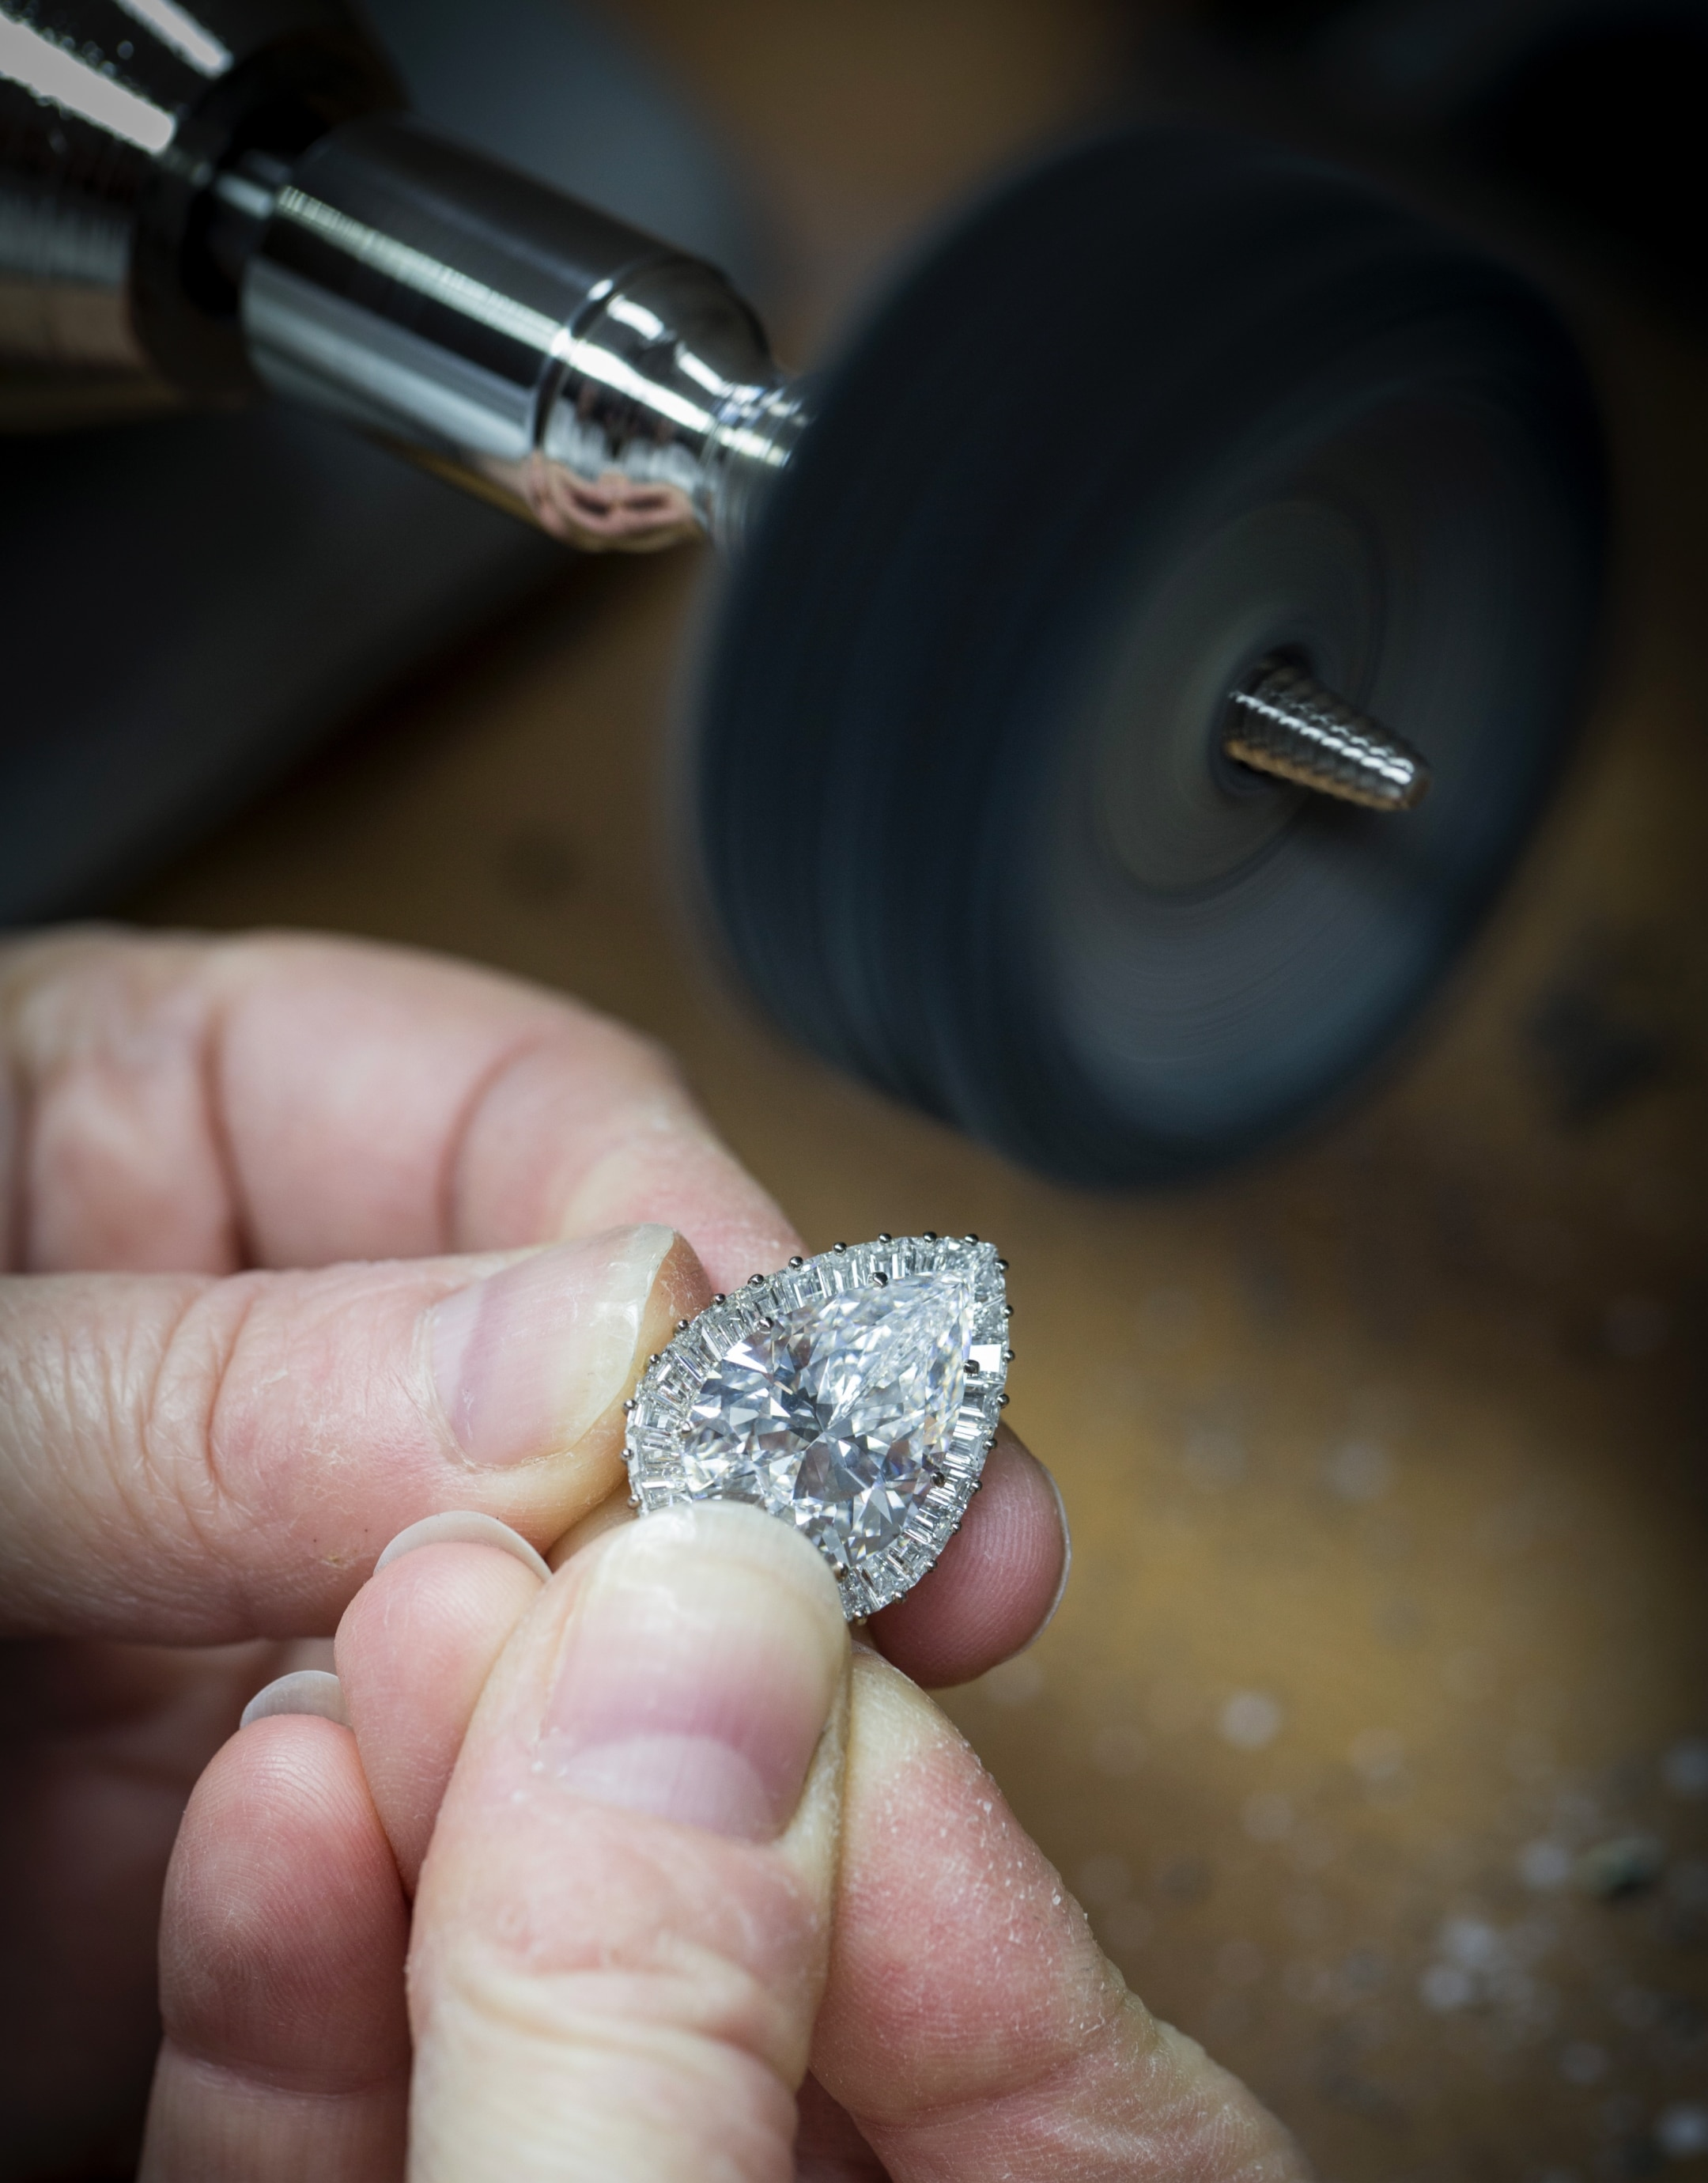 Polishing of the mounting of the center diamond, Van Cleef & Arpels